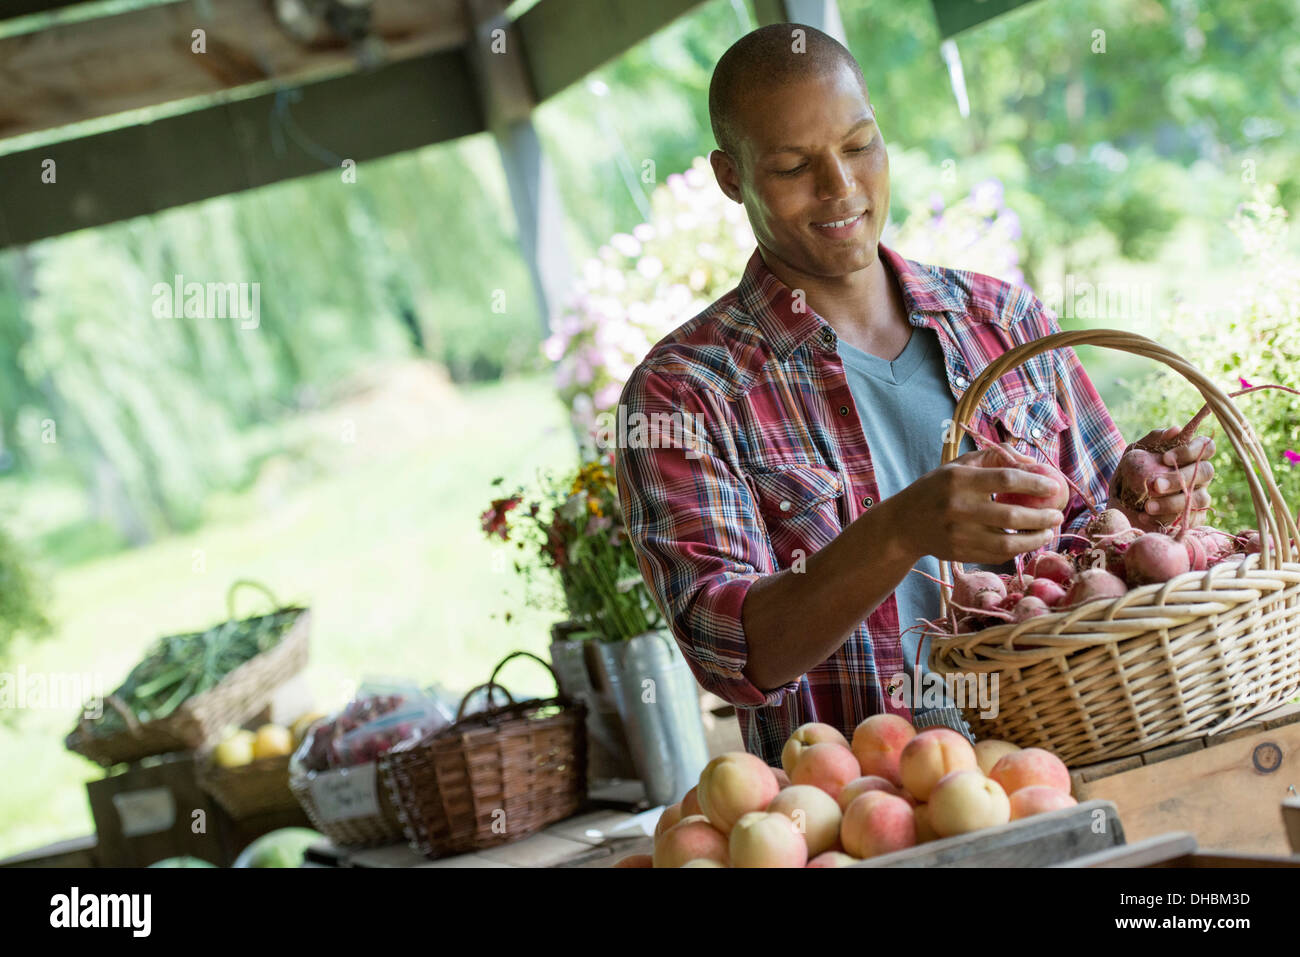 A farm stand with fresh organic vegetables and fruit.  A man sorting beetroot in a basket. Stock Photo